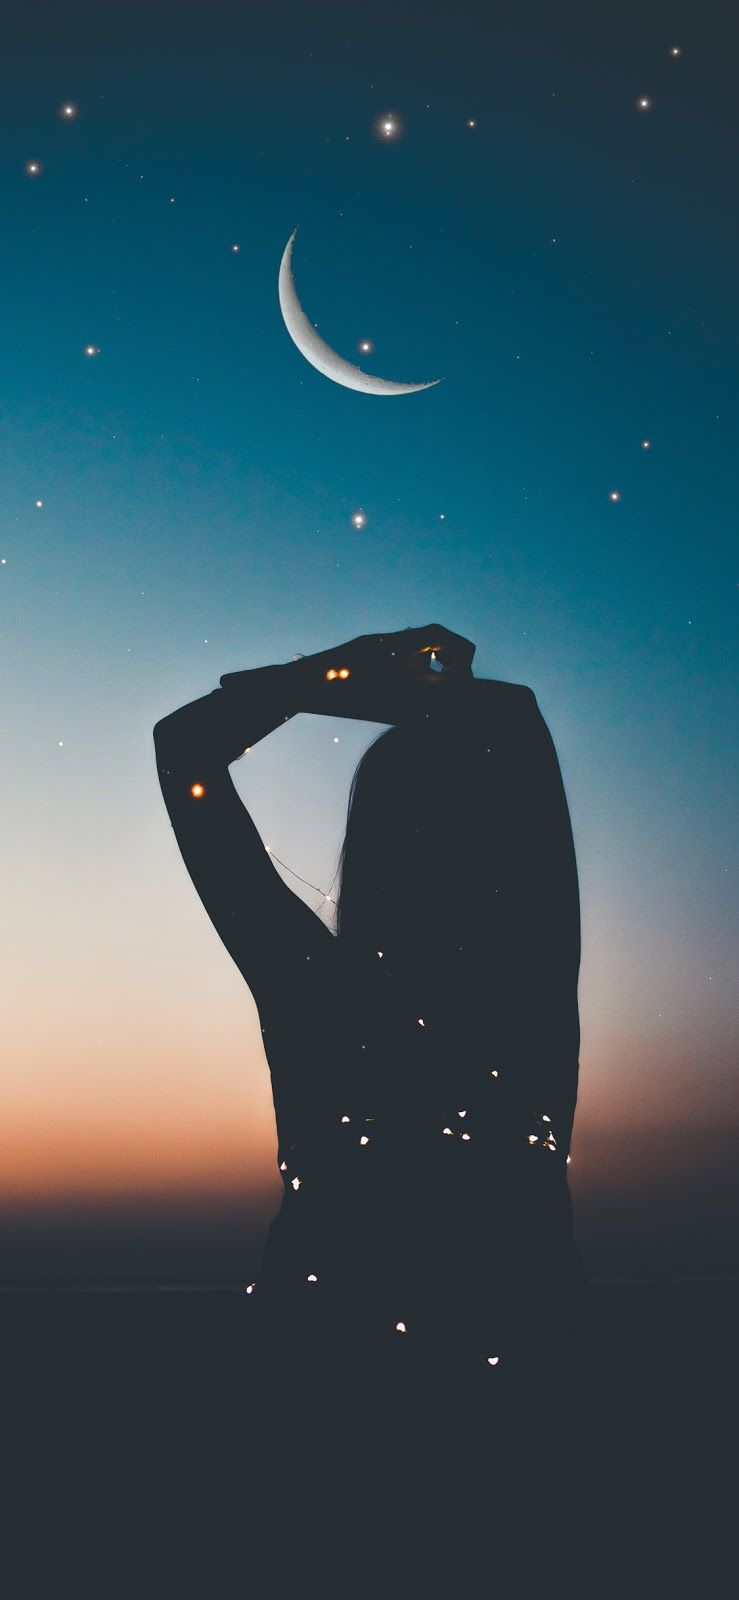 Blend In At Night Iphone X Cute Wallpaper For Phone Phone Backgrounds Tumblr Silhouette Photography